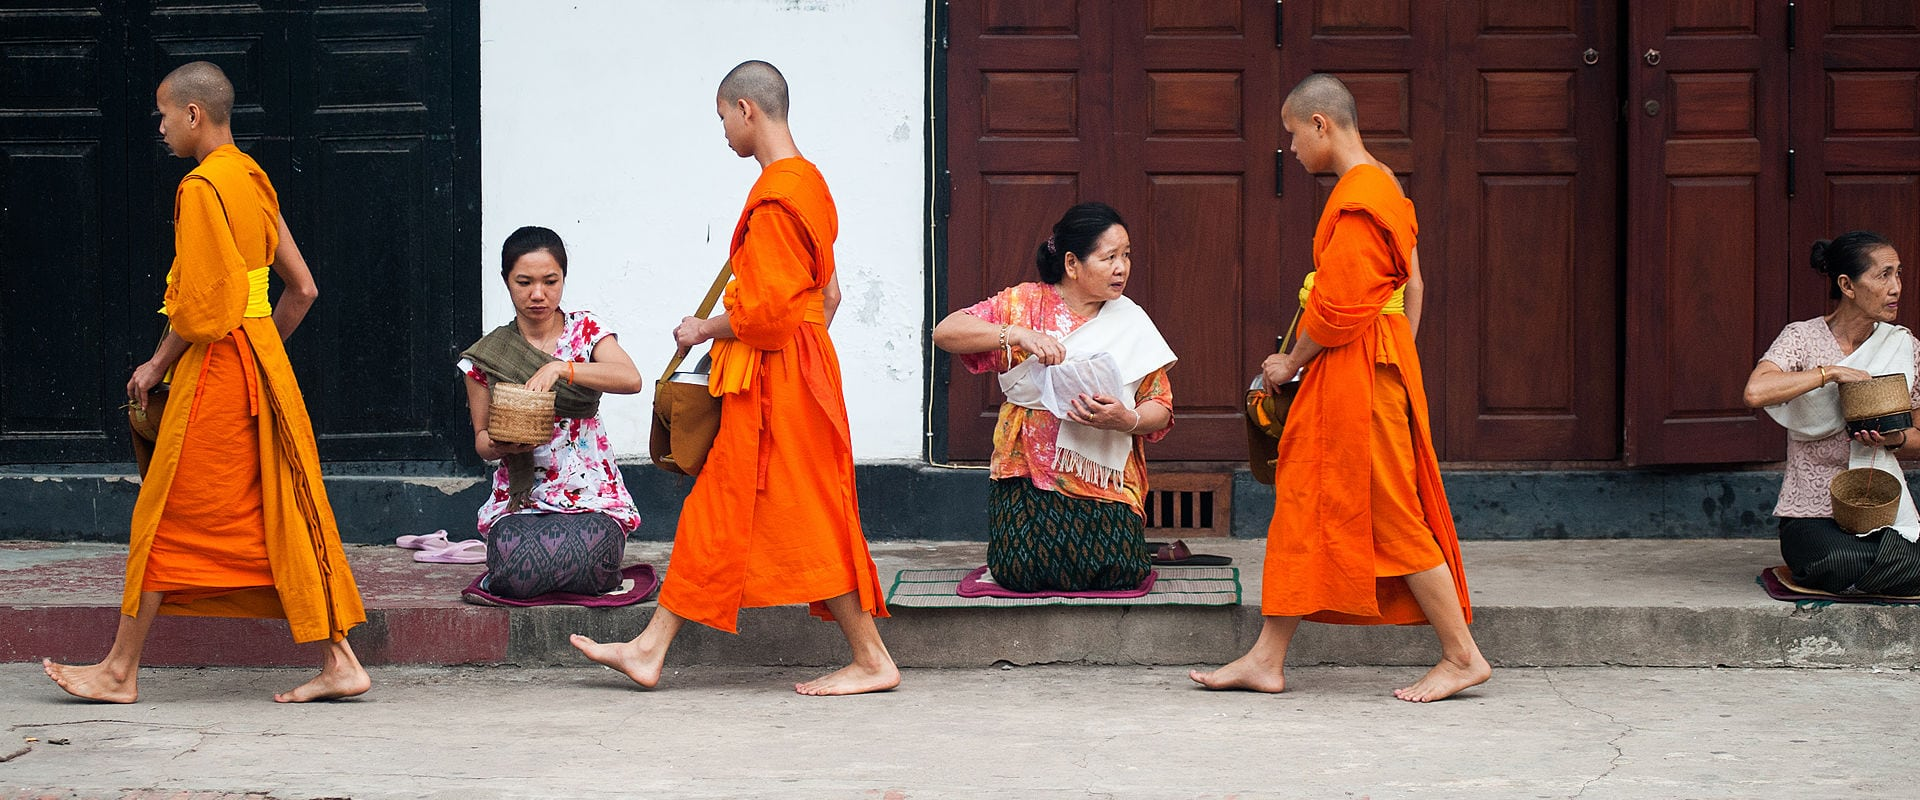 The Grantourismo Travels Guide to Luang Prabang, Laos. Copyright © 2017 Terence Carter / Grantourismo. All Rights Reserved.